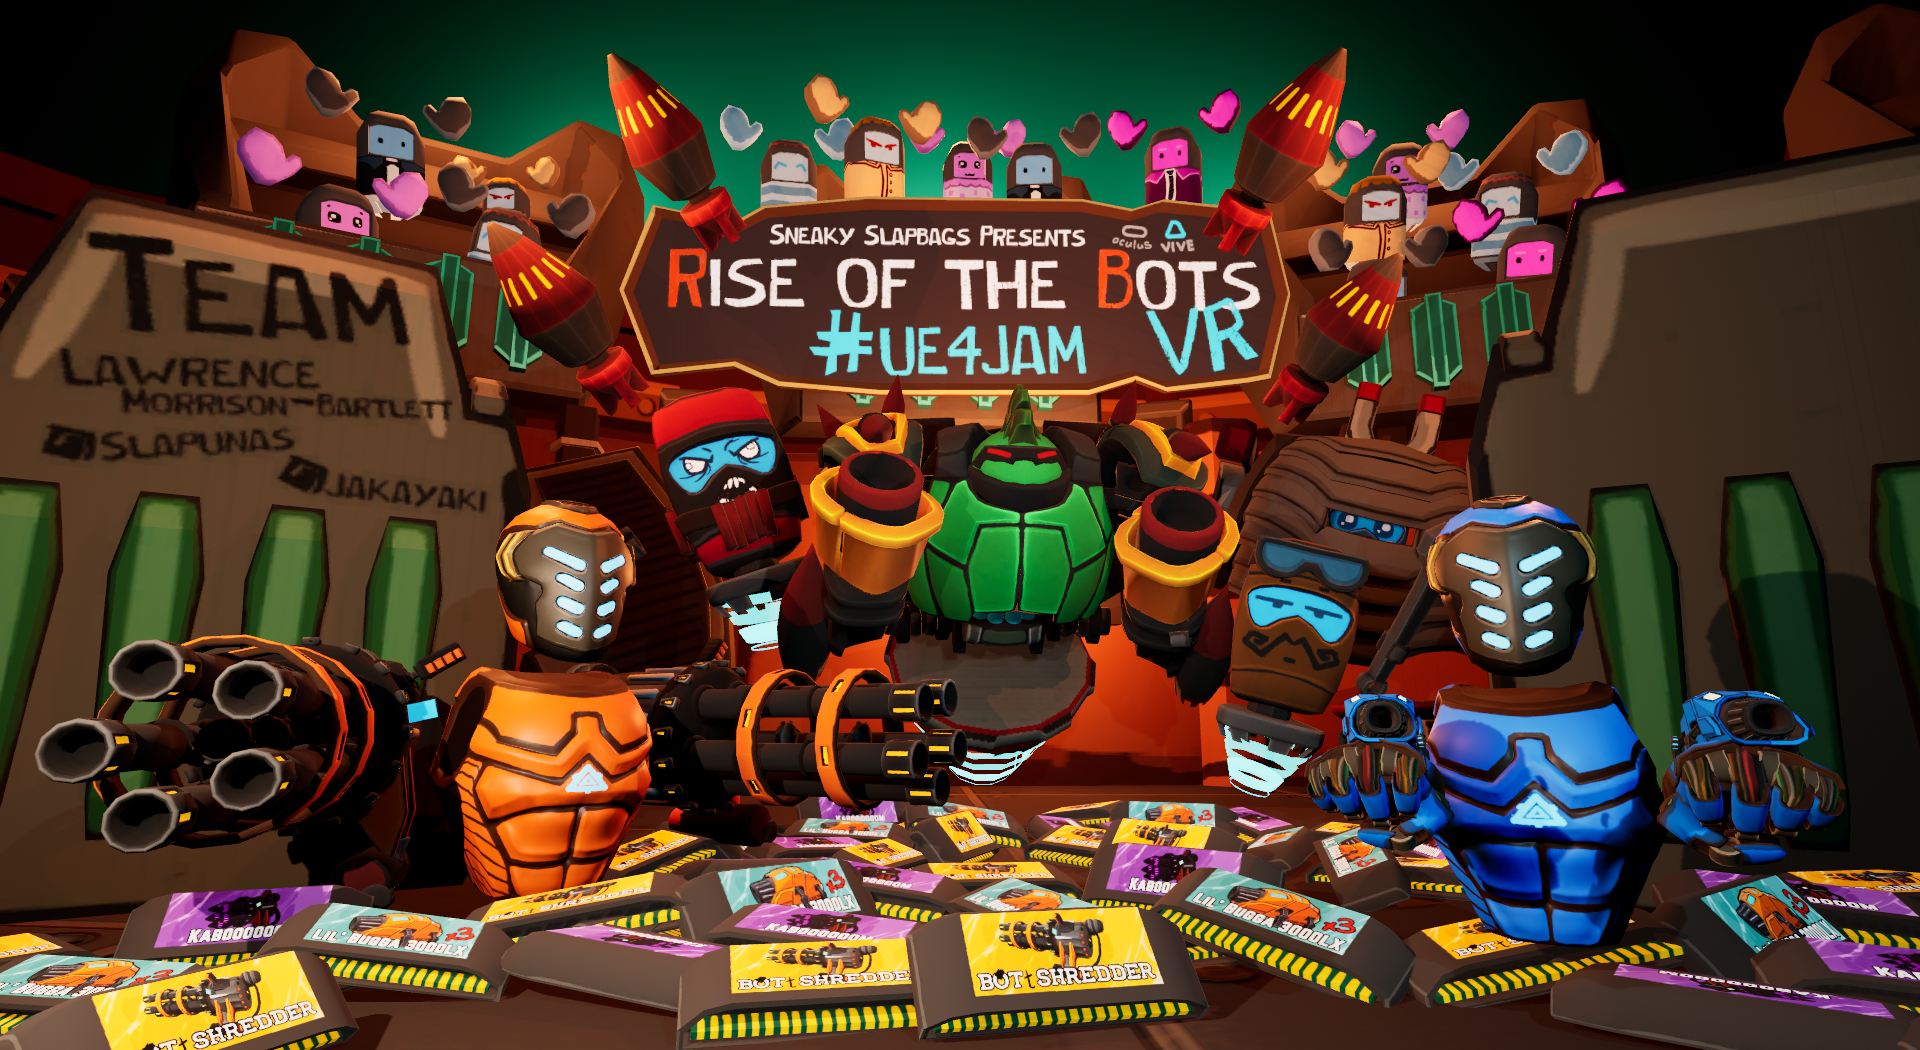 Rise of the Bots VR